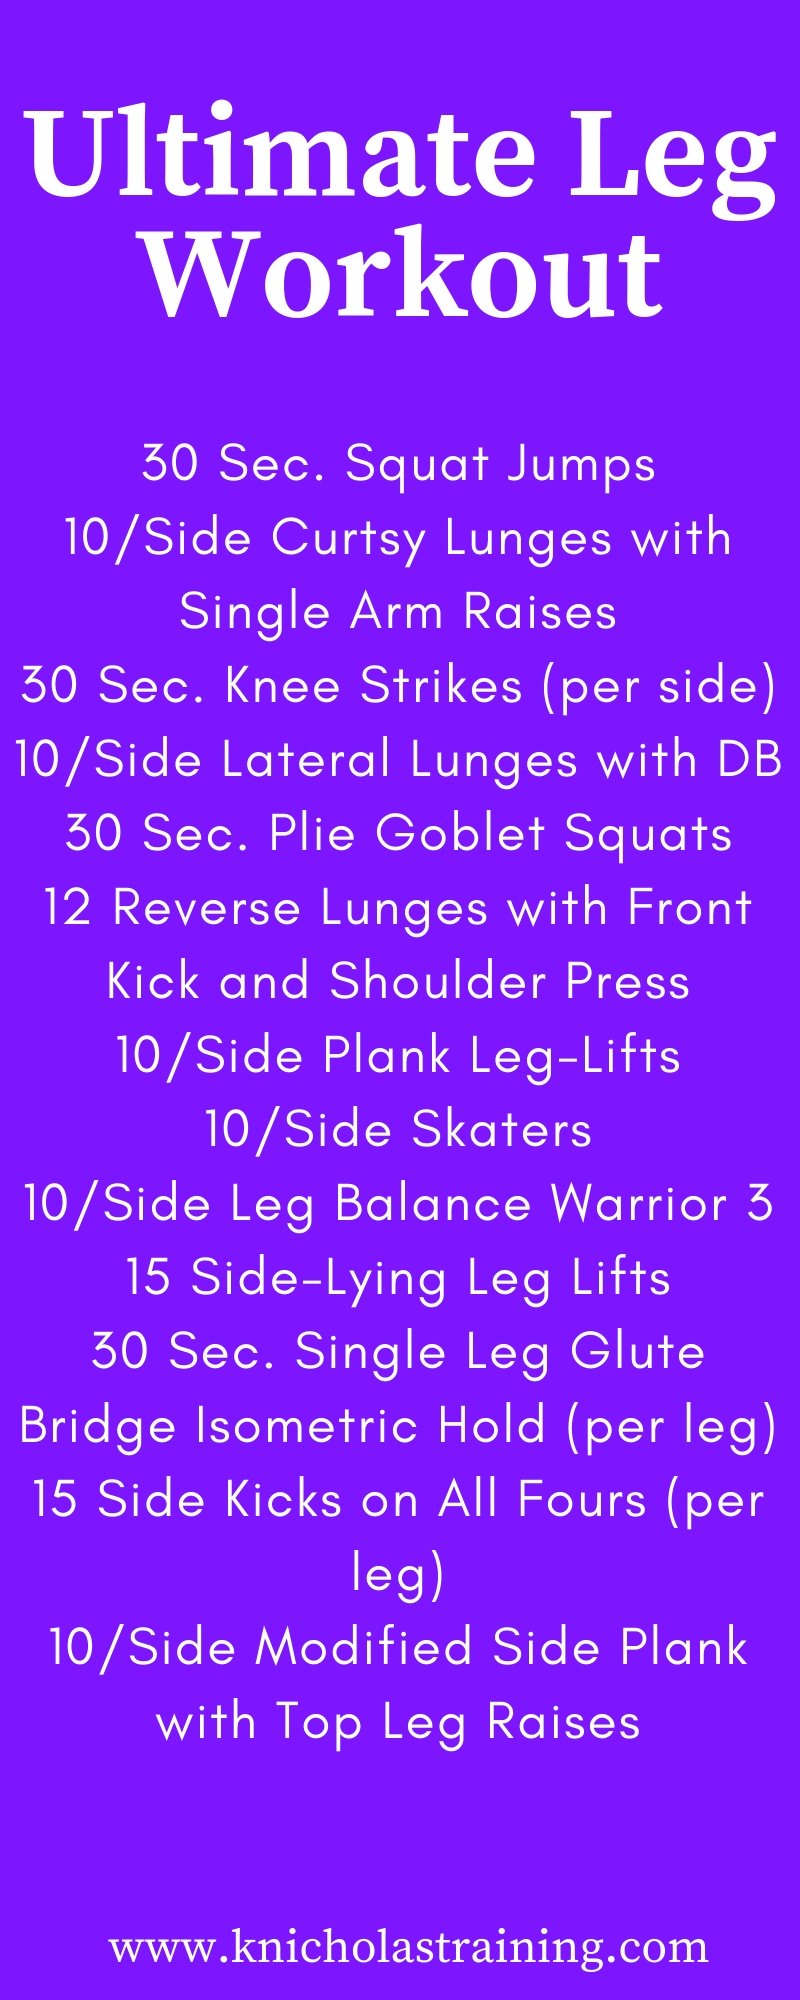 Ultimate Leg Workout.jpg